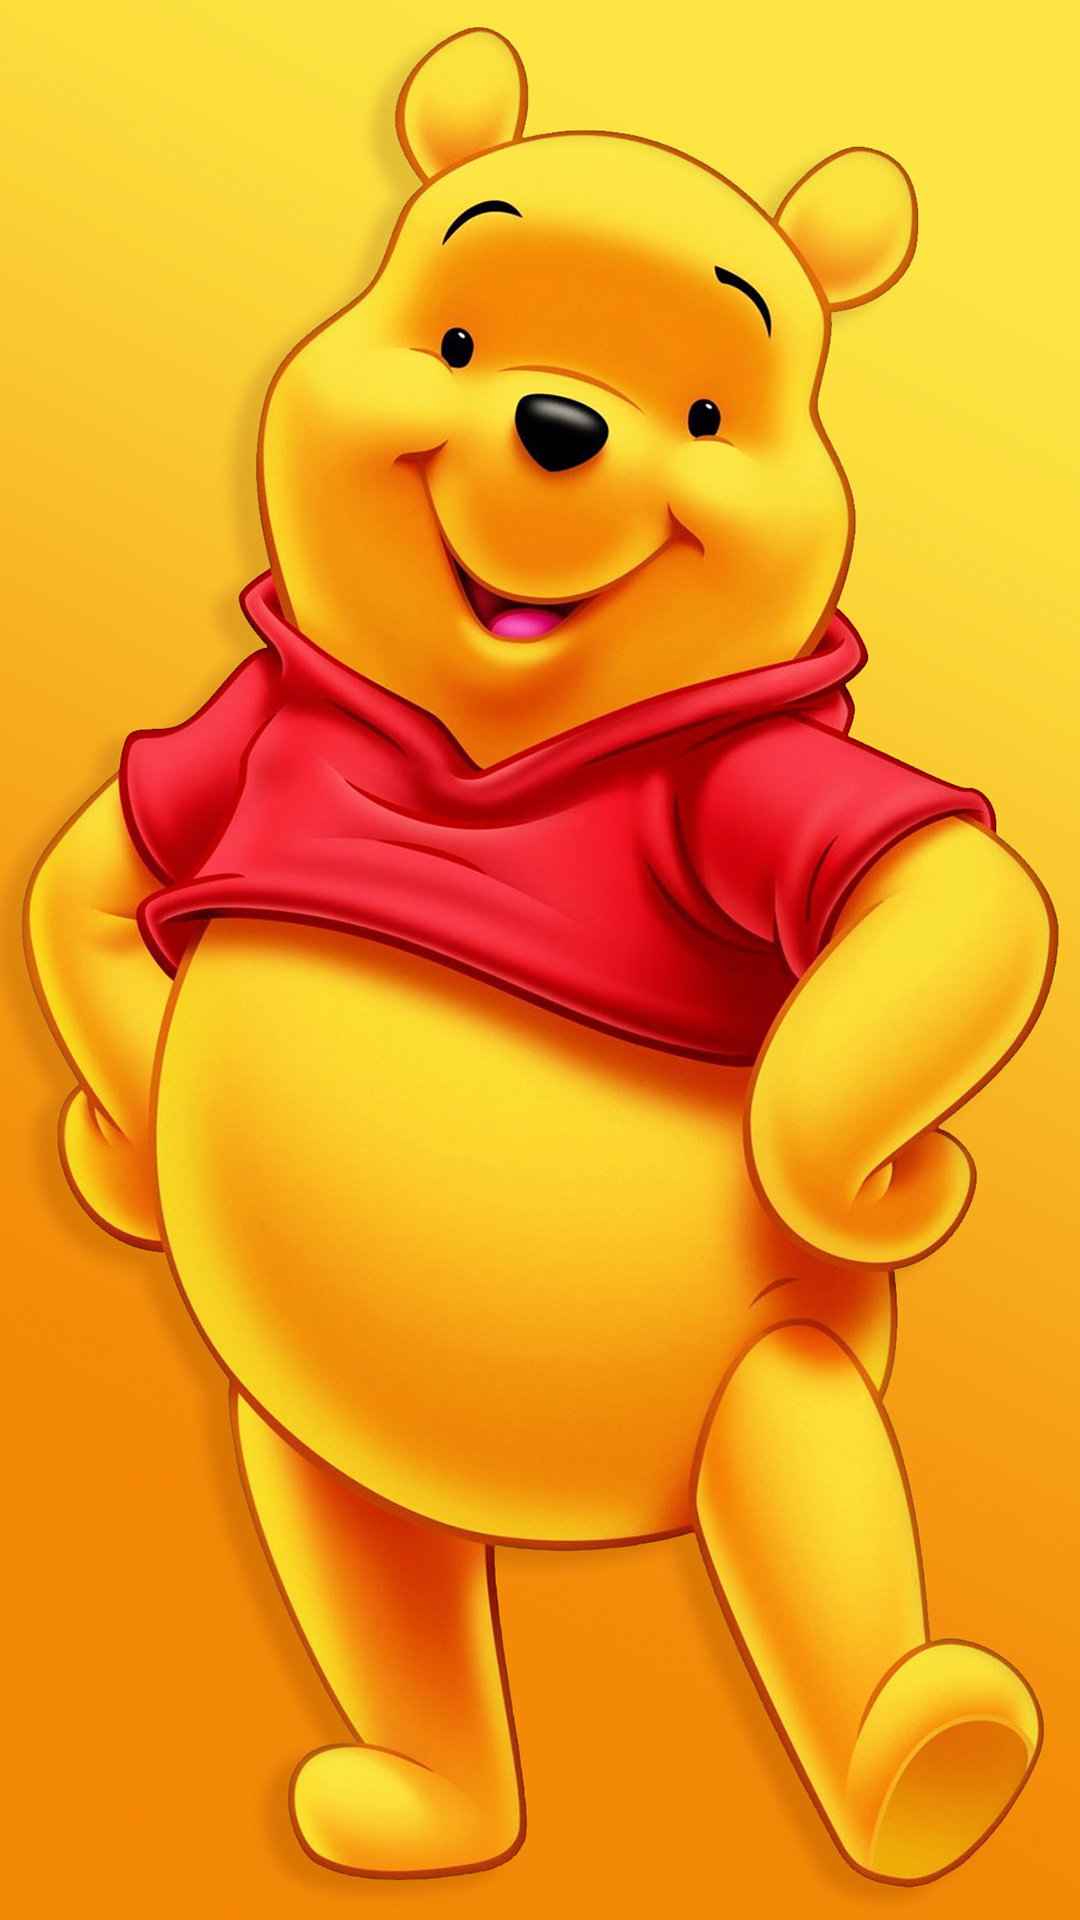 Free Download Wallpaper Of Pooh Bear 1080x1920 For Your Desktop Mobile Tablet Explore 78 Pooh Bear Wallpapers Winnie The Pooh Desktop Wallpaper Pooh Wallpaper Pooh Bear Wallpaper Desktop